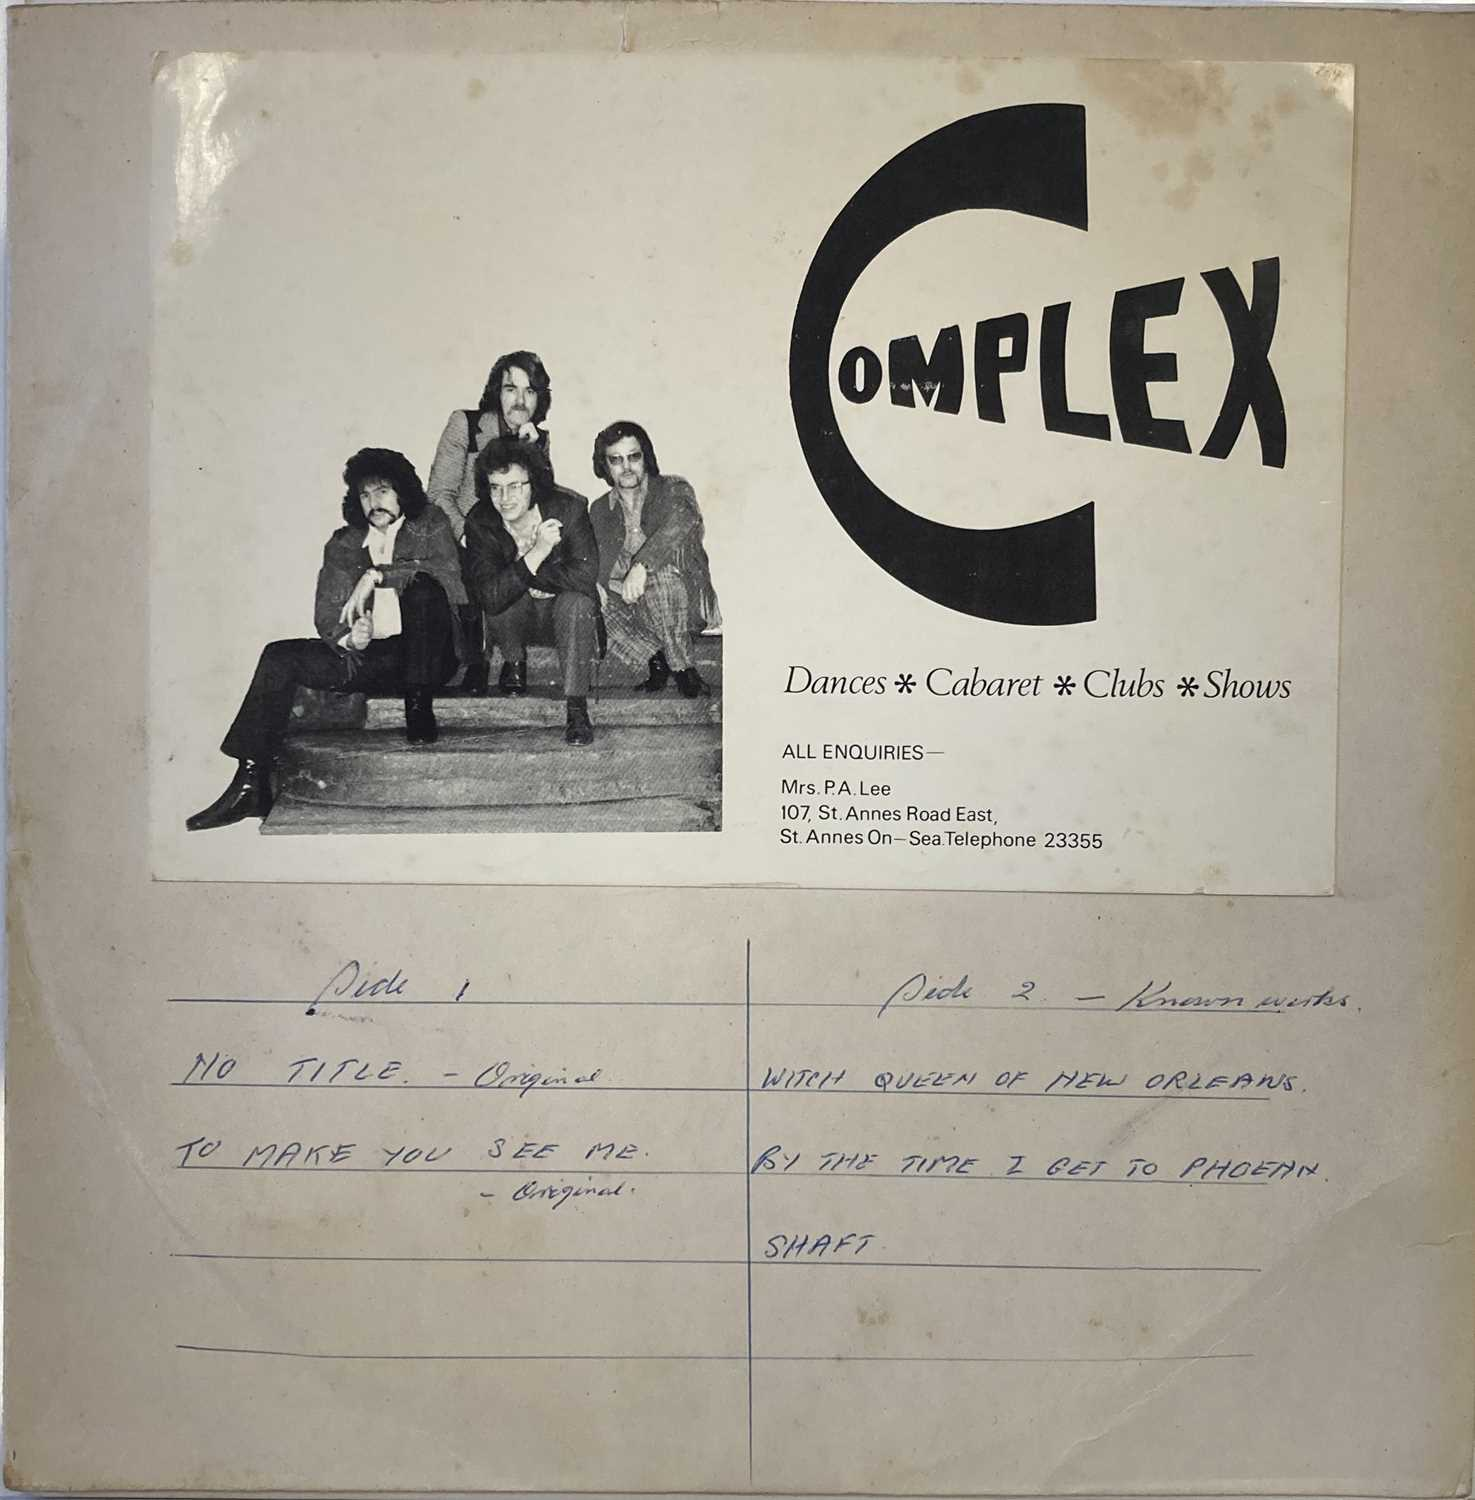 """Lot 309 - COMPLEX - 'UNTITLED' UNRELEASED 10"""" LP (CRAIGHALL RECORDING)"""